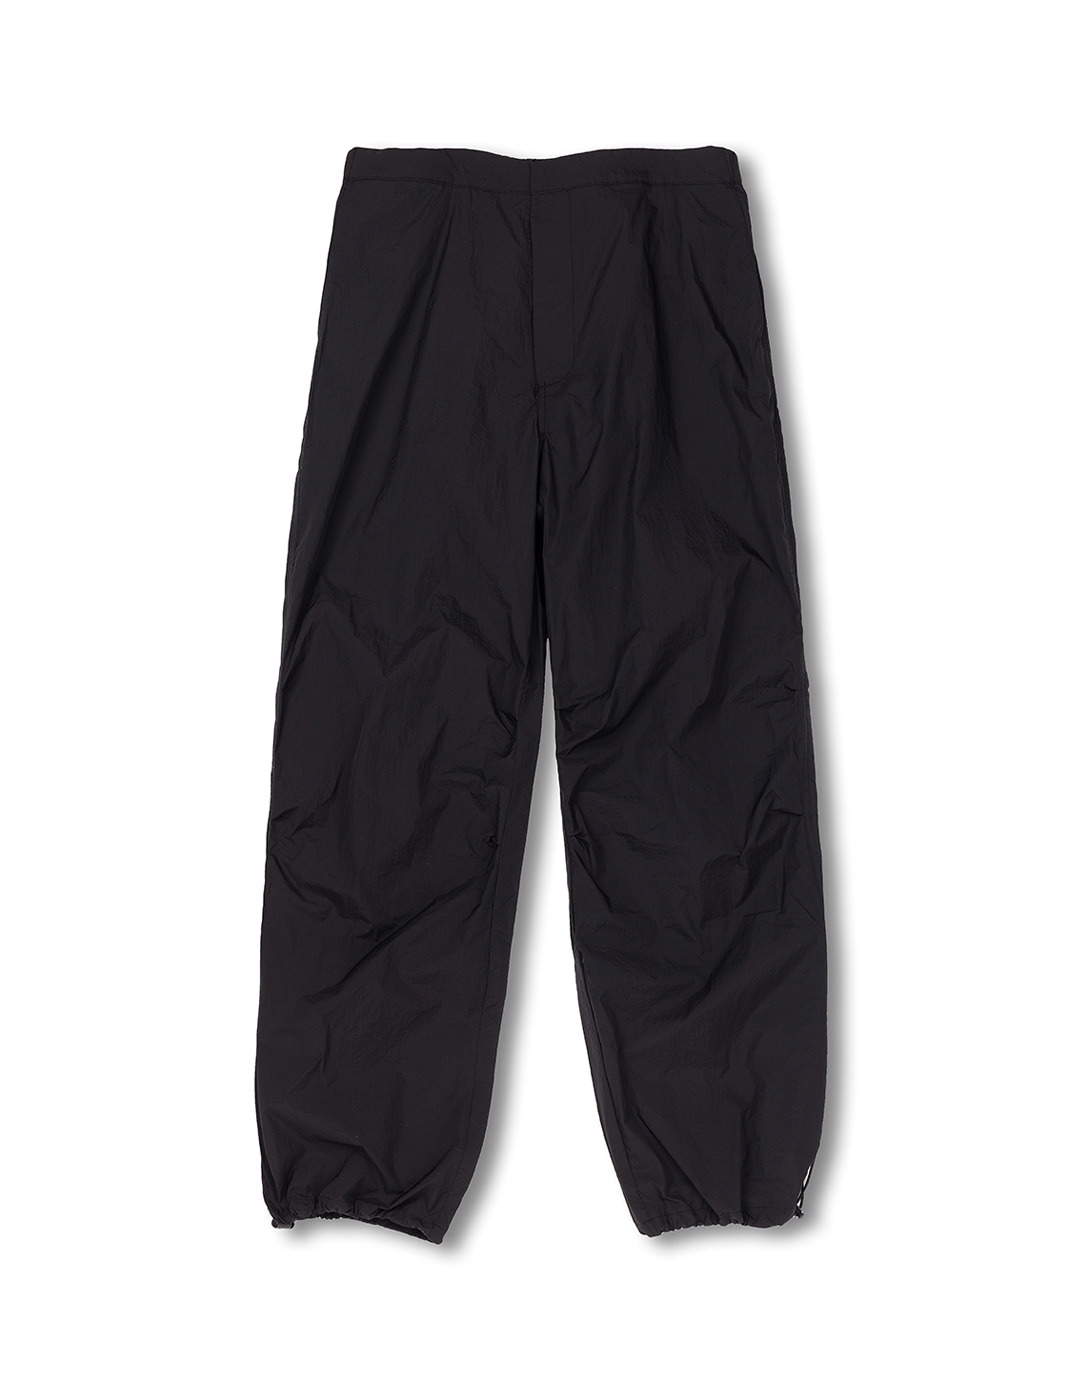 Black non-painted nylon pants